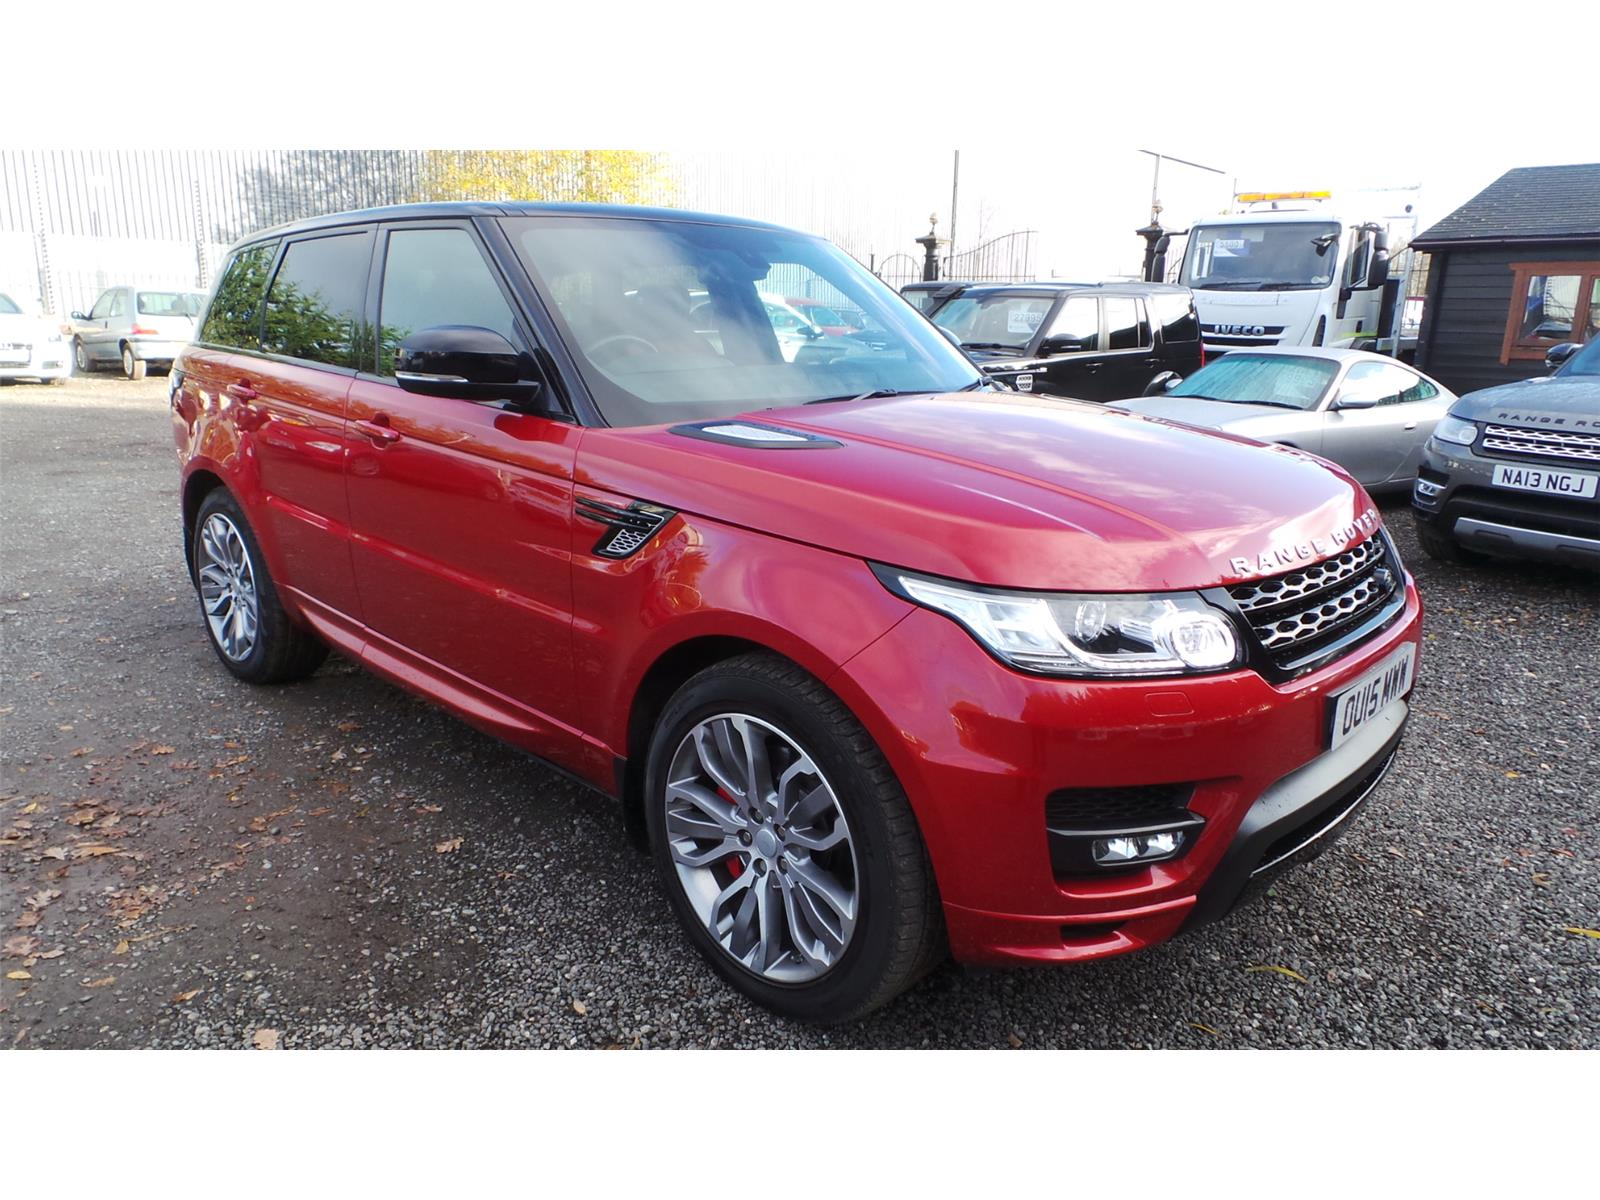 2015 Land Rover Range Rover Autobiography Dynamic SDV6 4WD 2993 Diesel Automatic 8 Speed 5 Door Estate